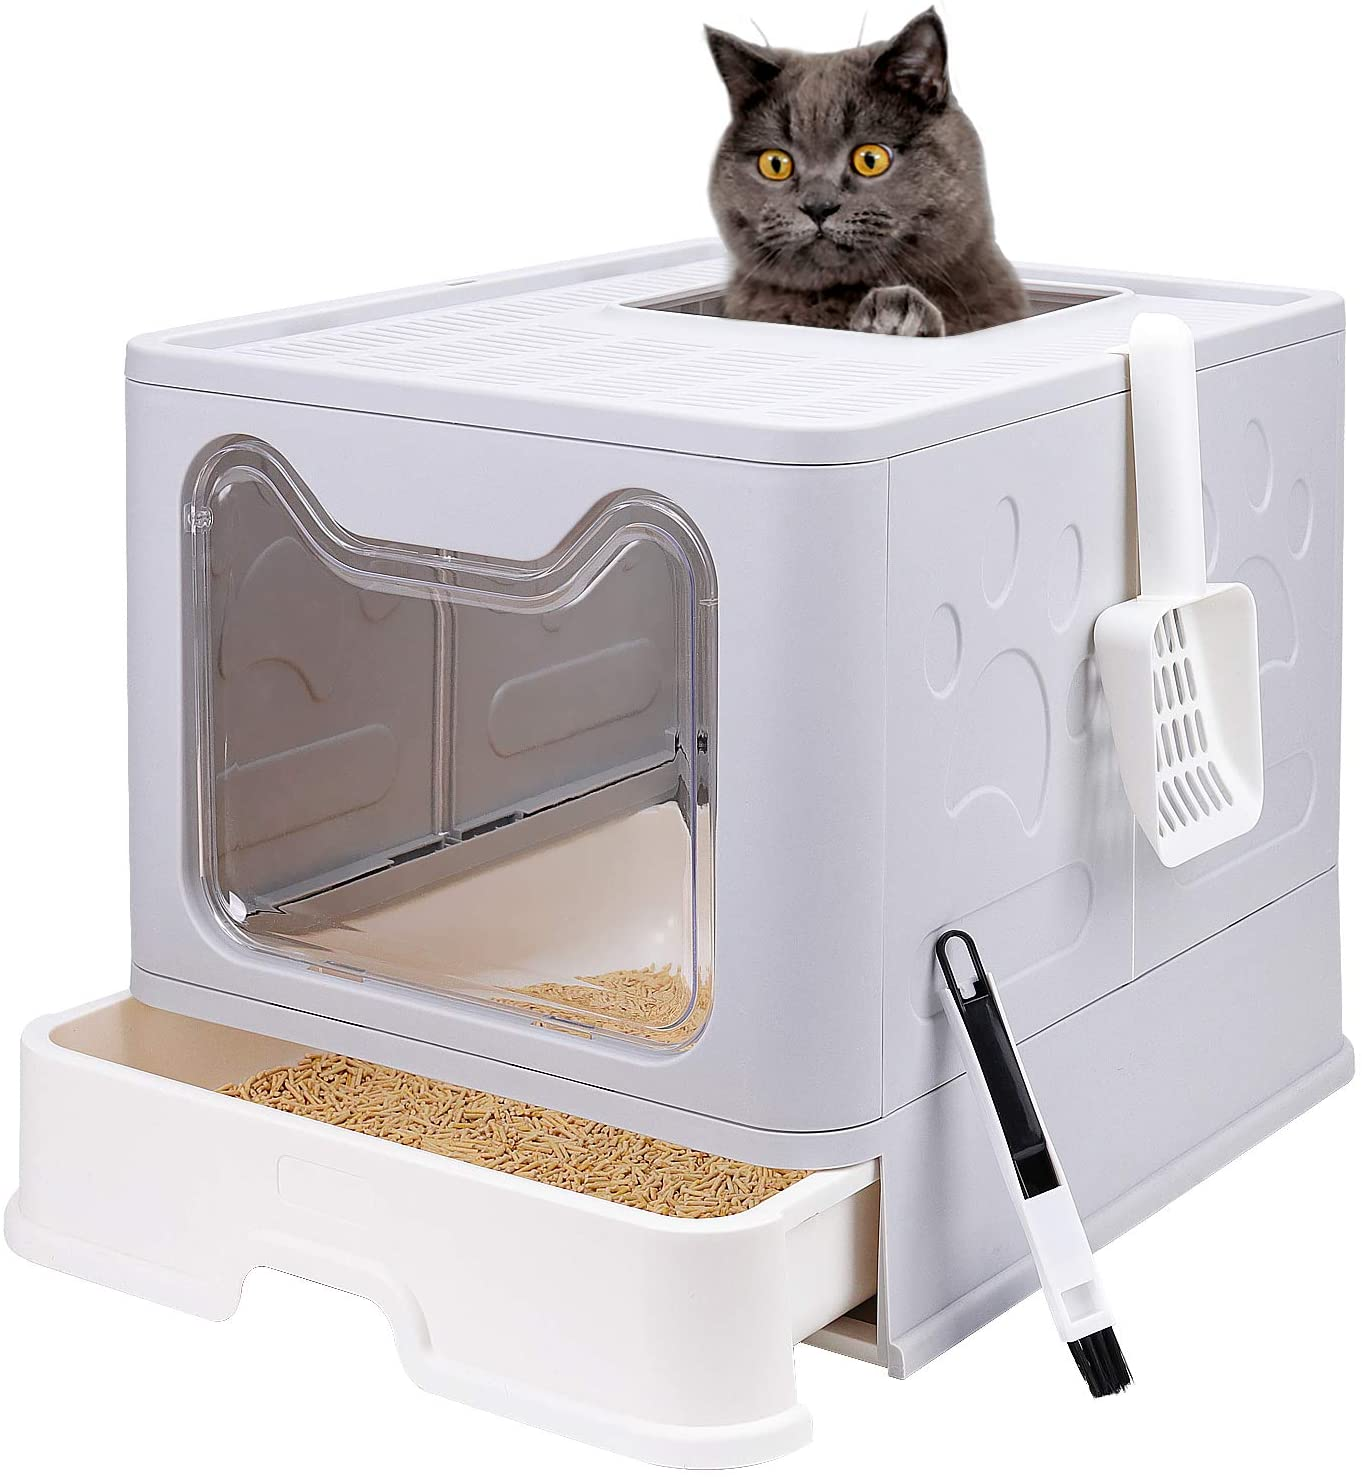 Foldable Cat Litter Box with Sale Entry Japan Maker New Enclosed Top Lid Potty